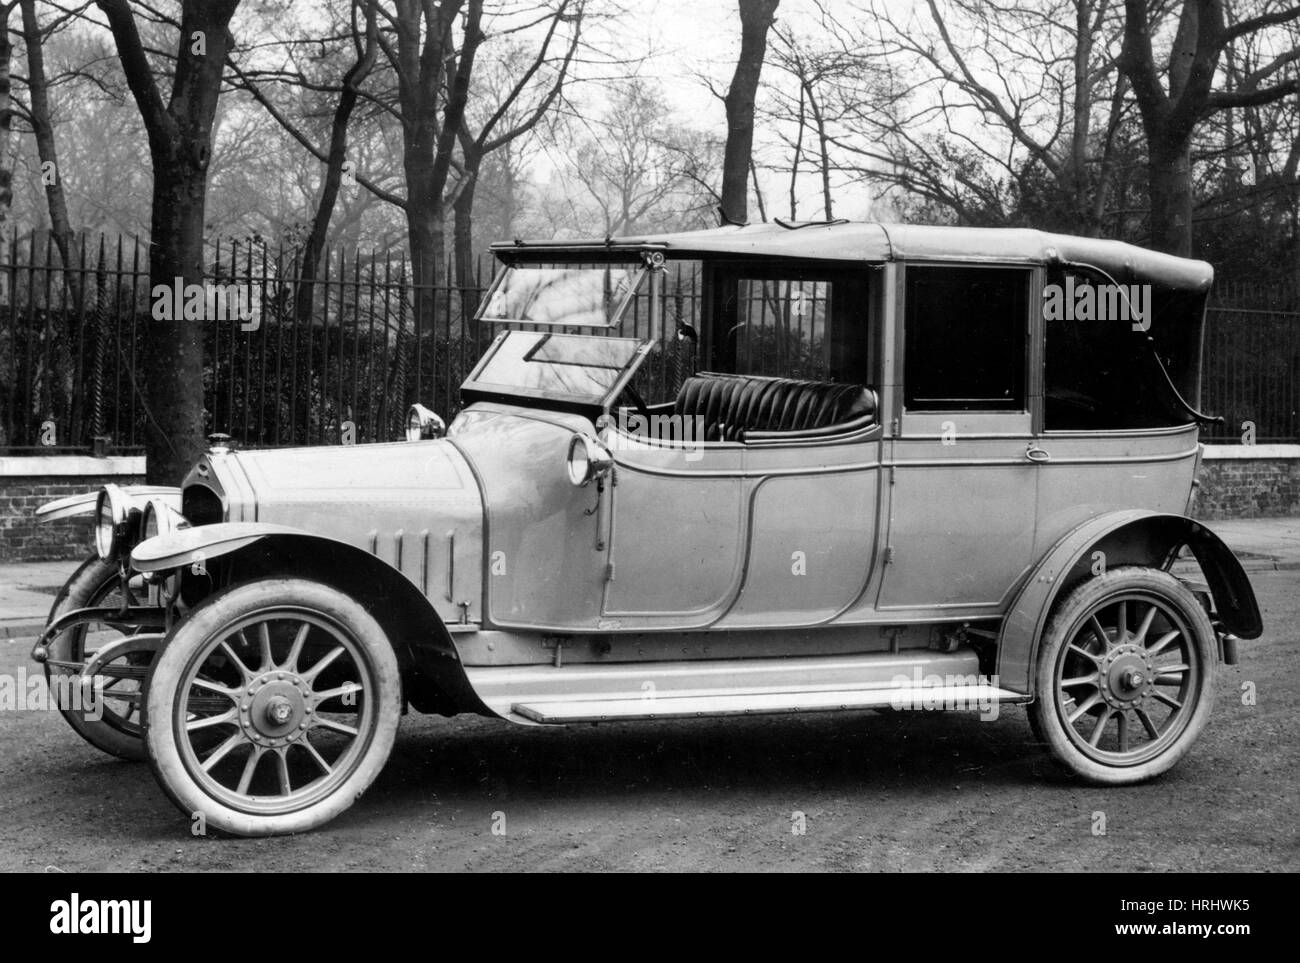 1914 Excelsior 16hp - Stock Image